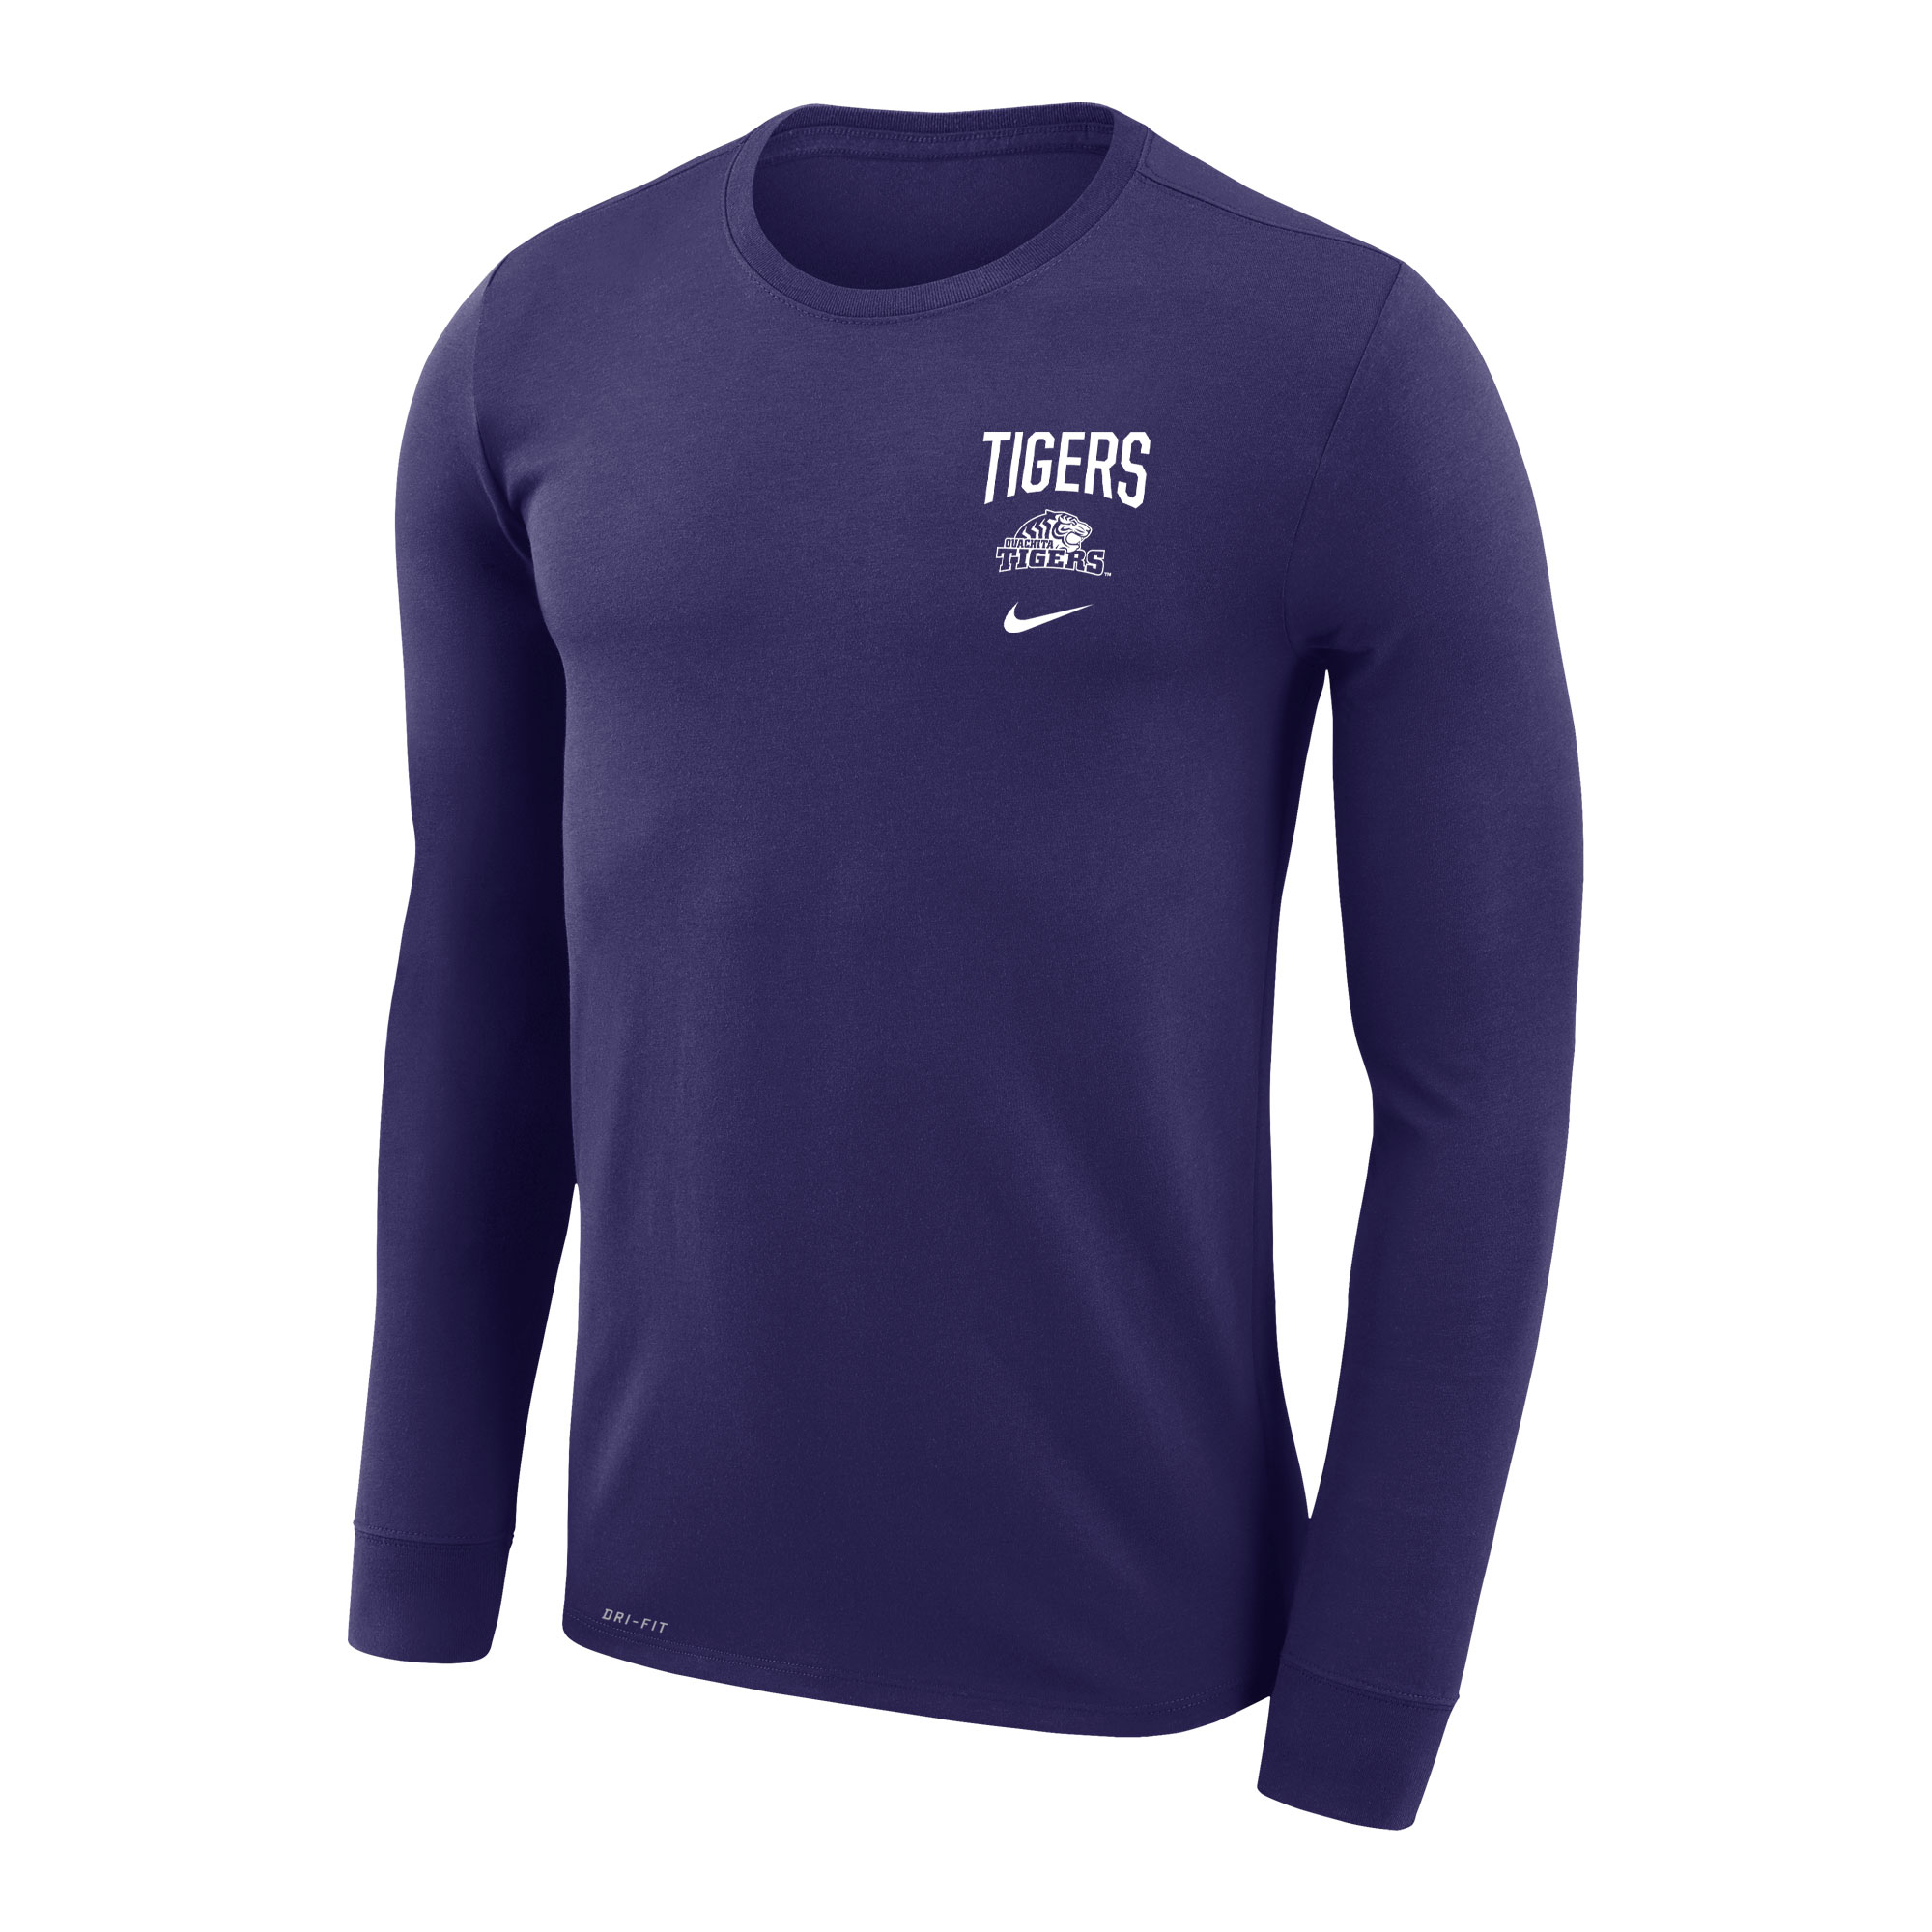 TIGERS NIKE LEGEND LS TEE